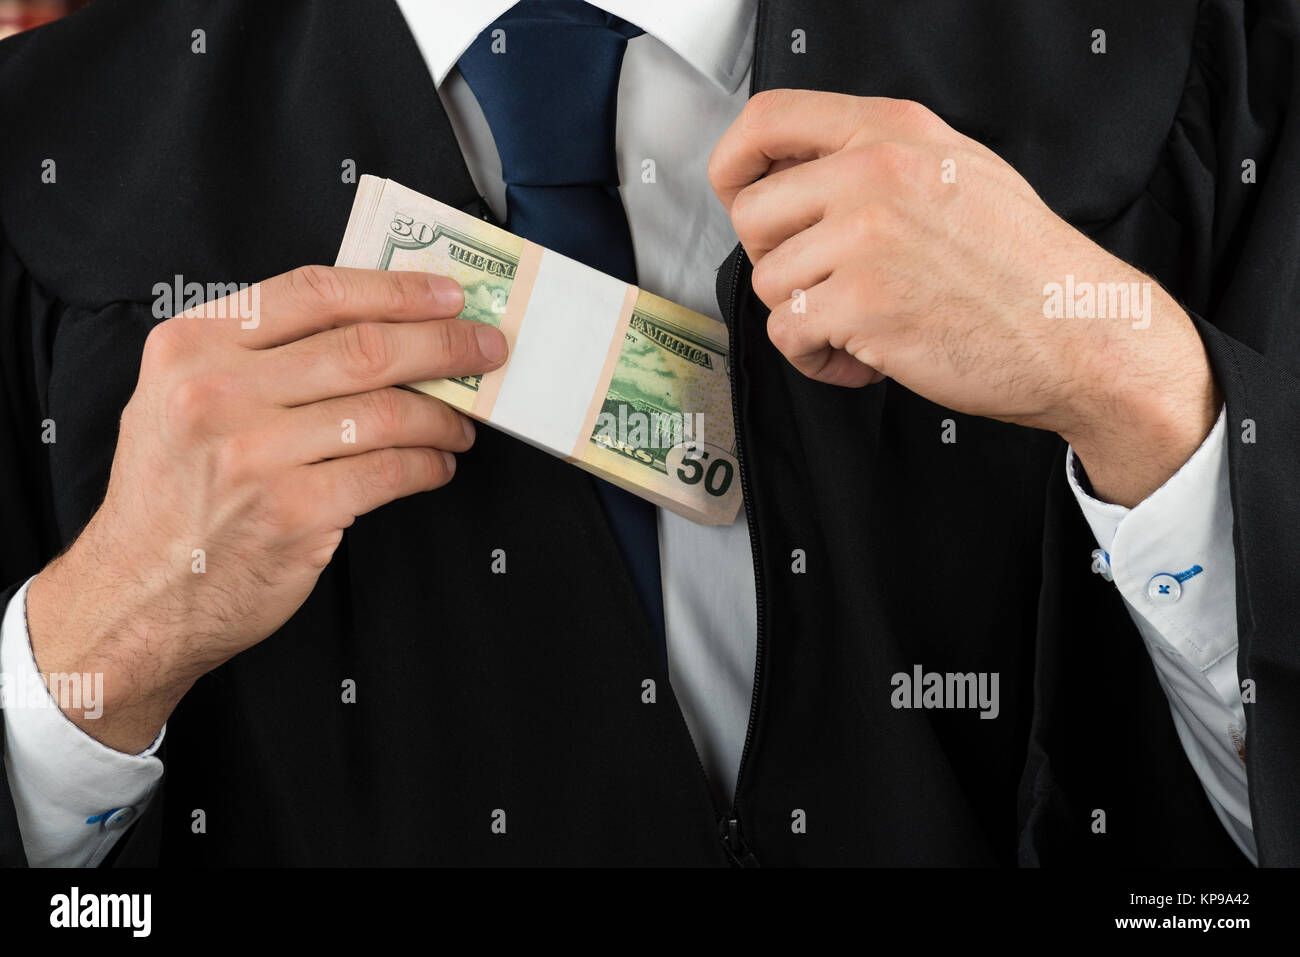 Judge Putting Dollar Bundle In Pocket Stock Photo